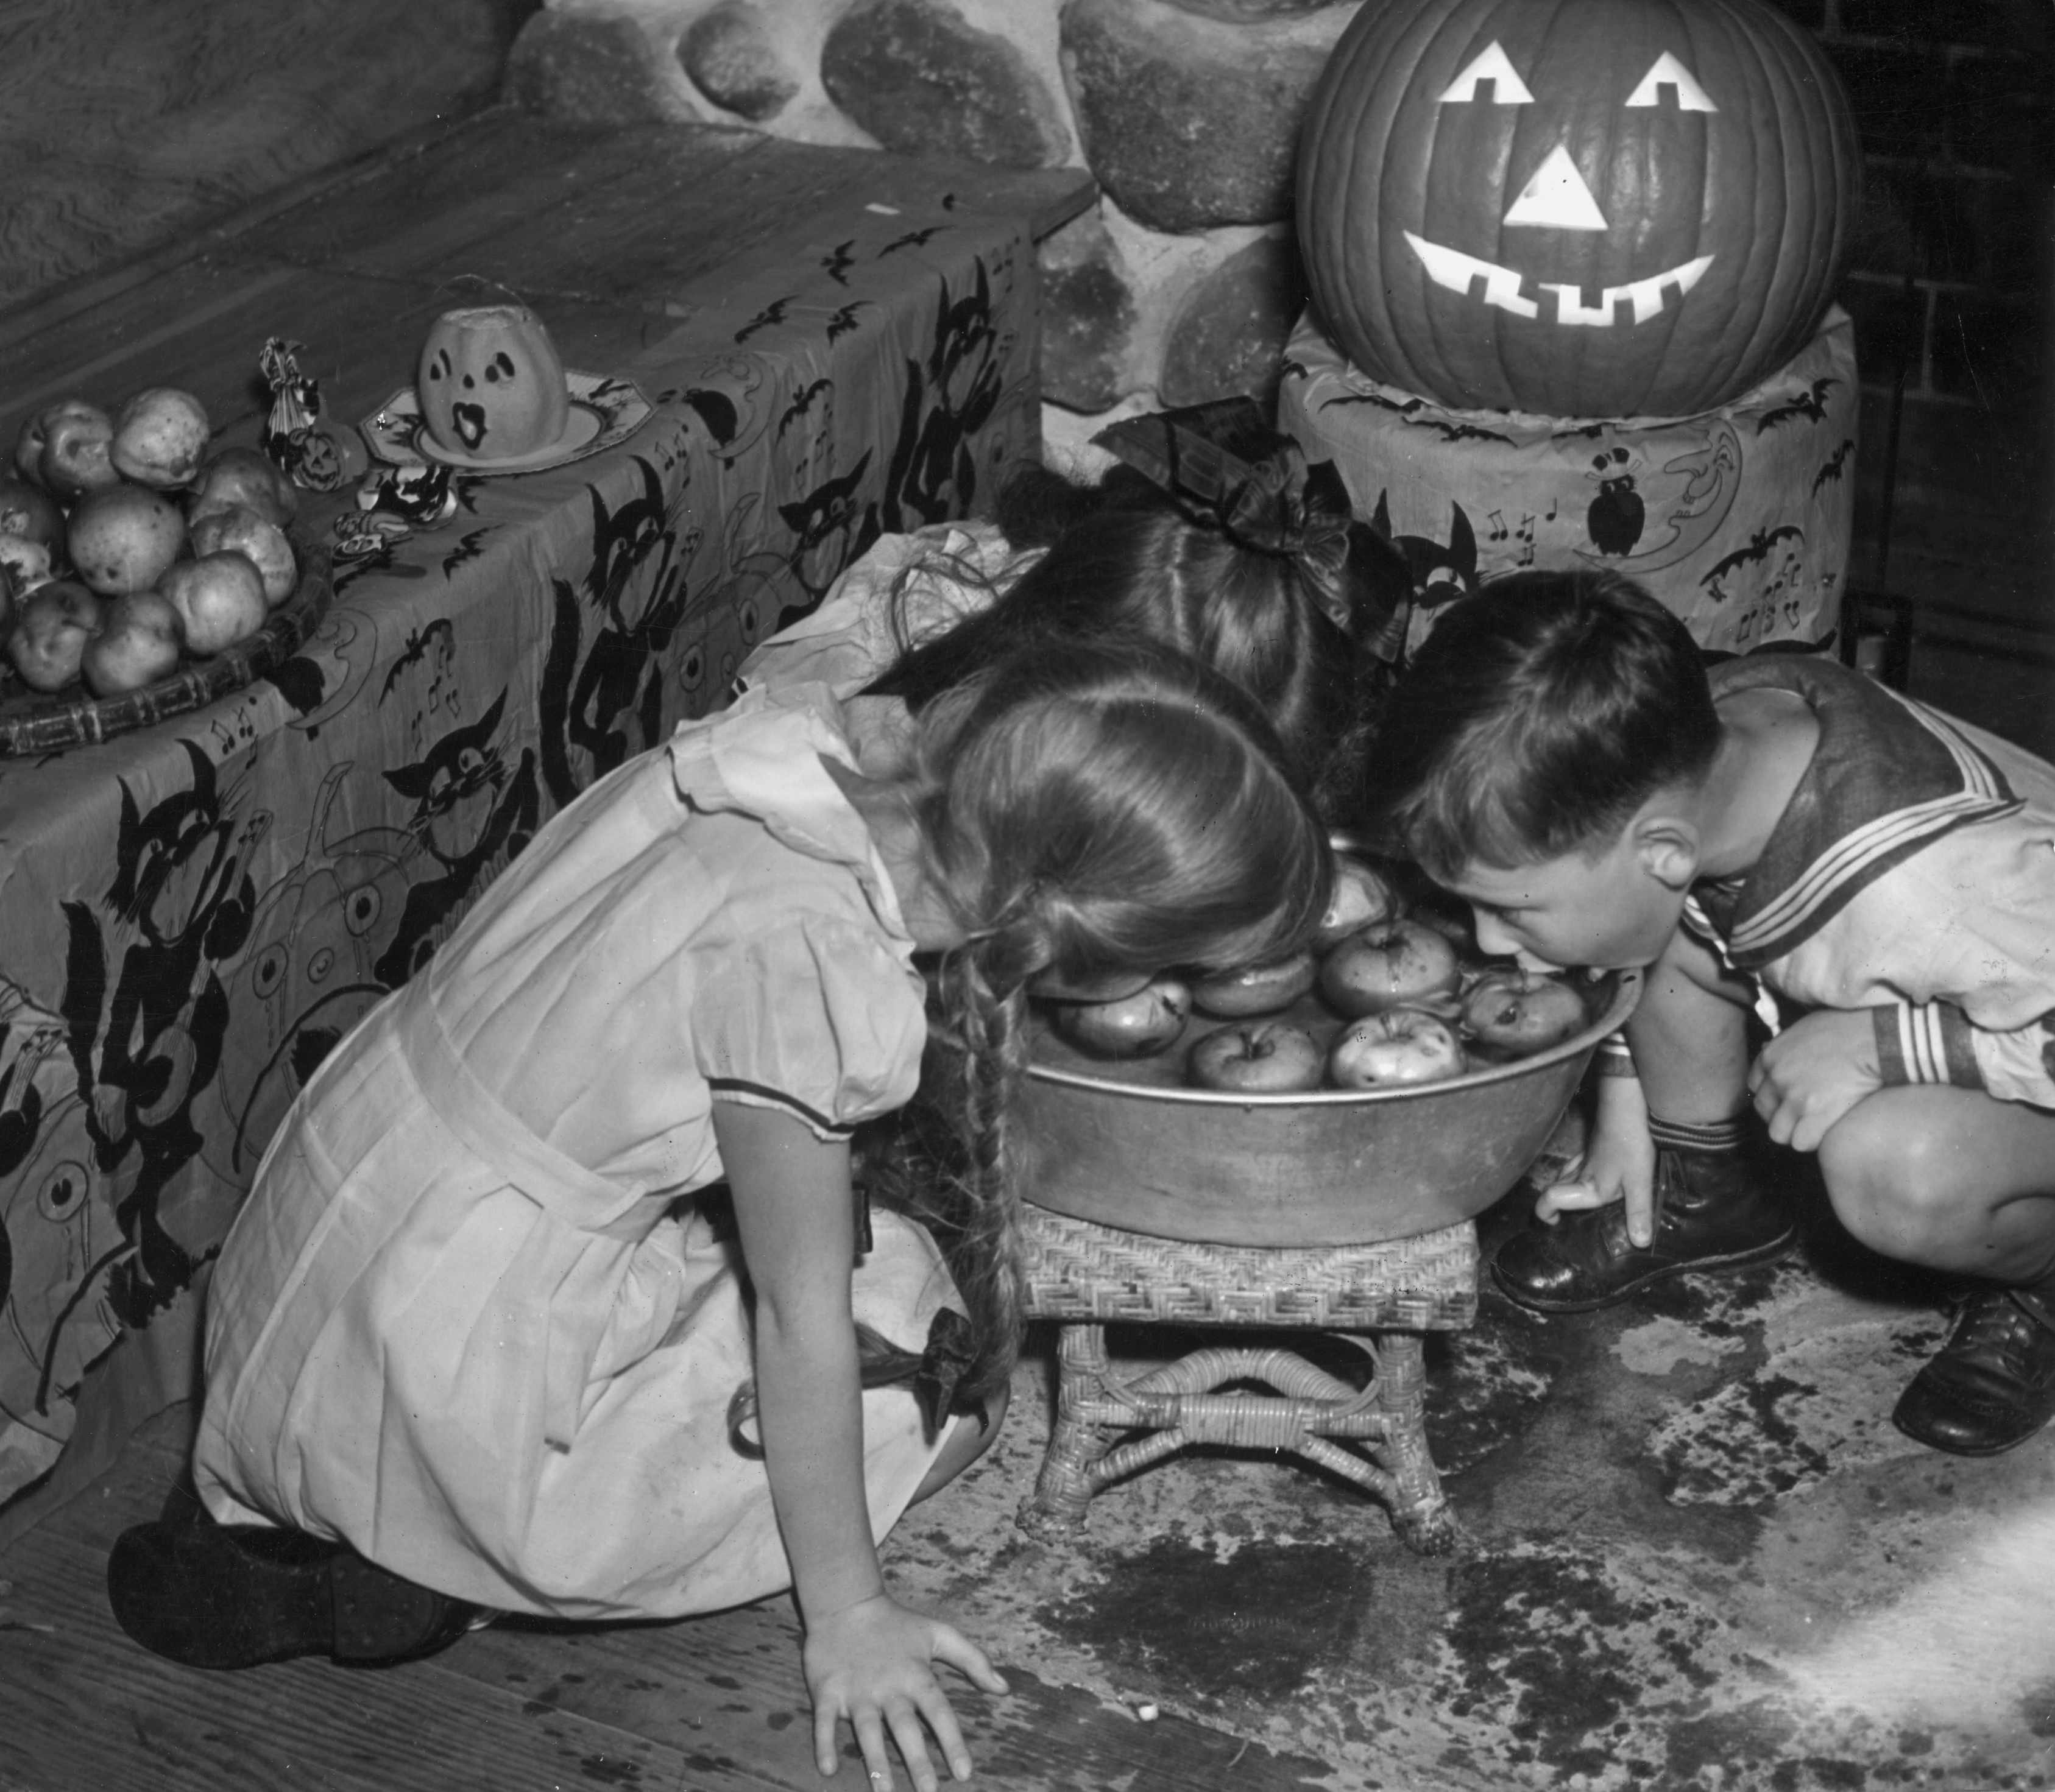 Children apple bobbing for Halloween, with an illuminated Jack-O-Lantern behind © Getty Images